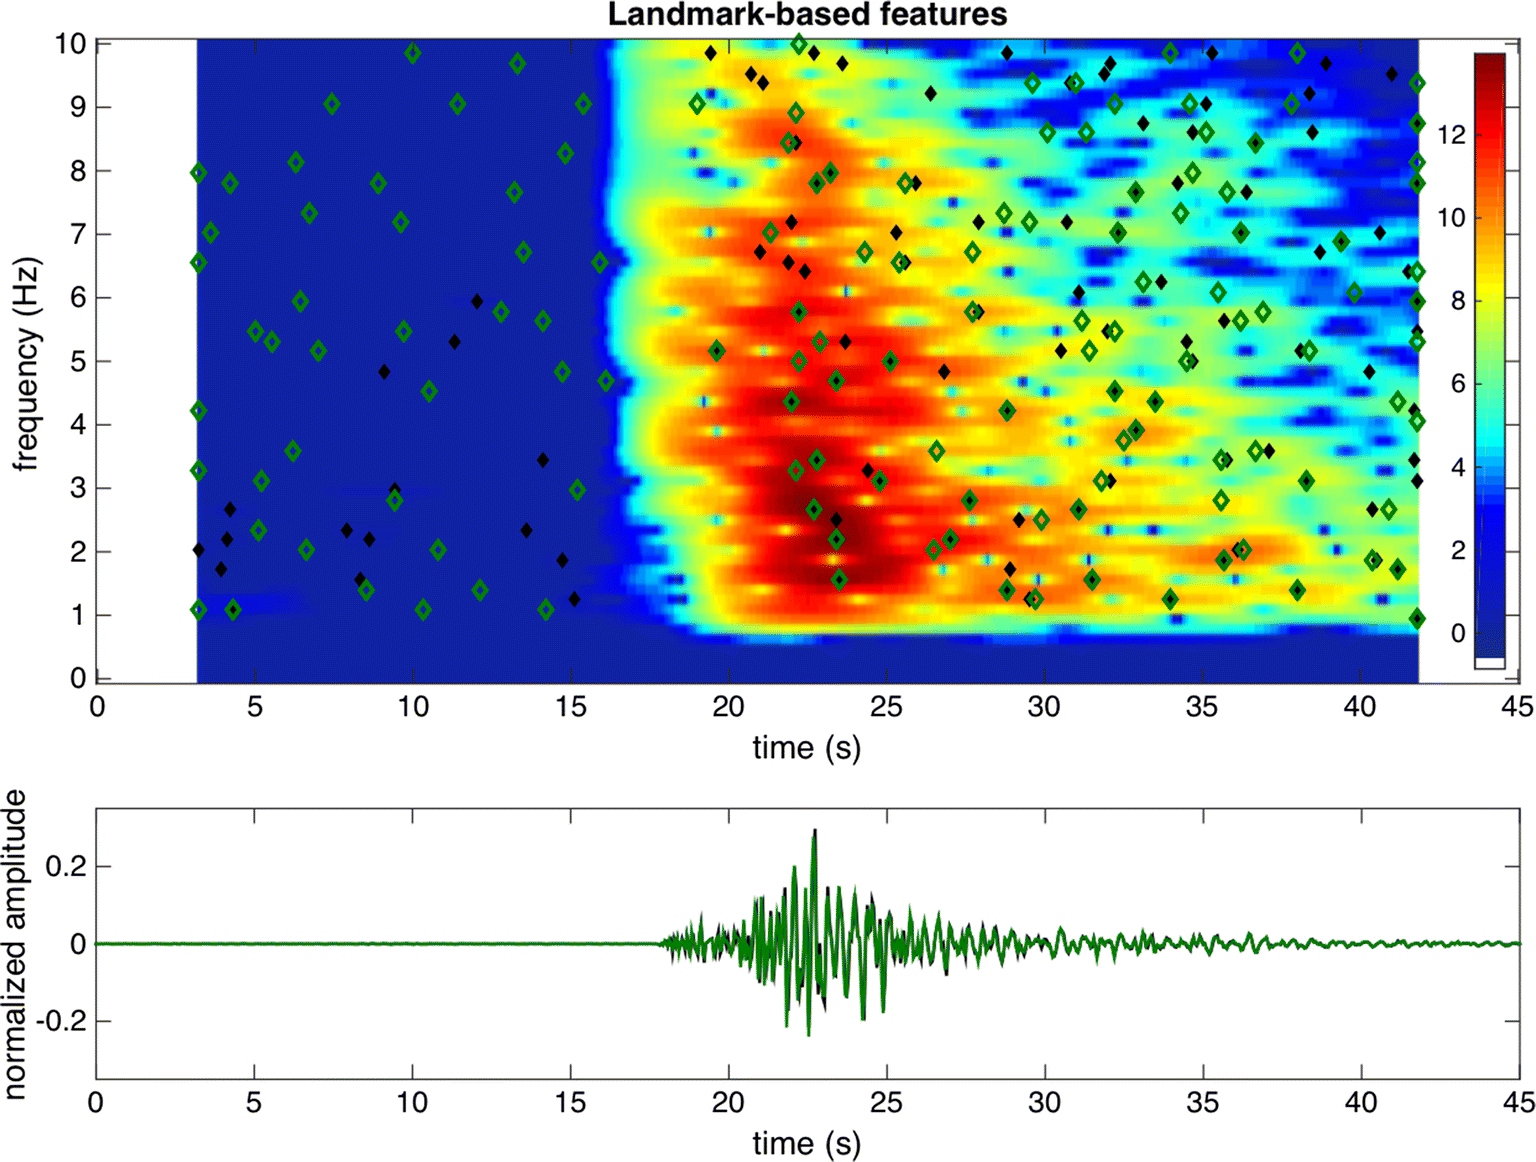 Earthquake Fingerprints: Extracting Waveform Features for